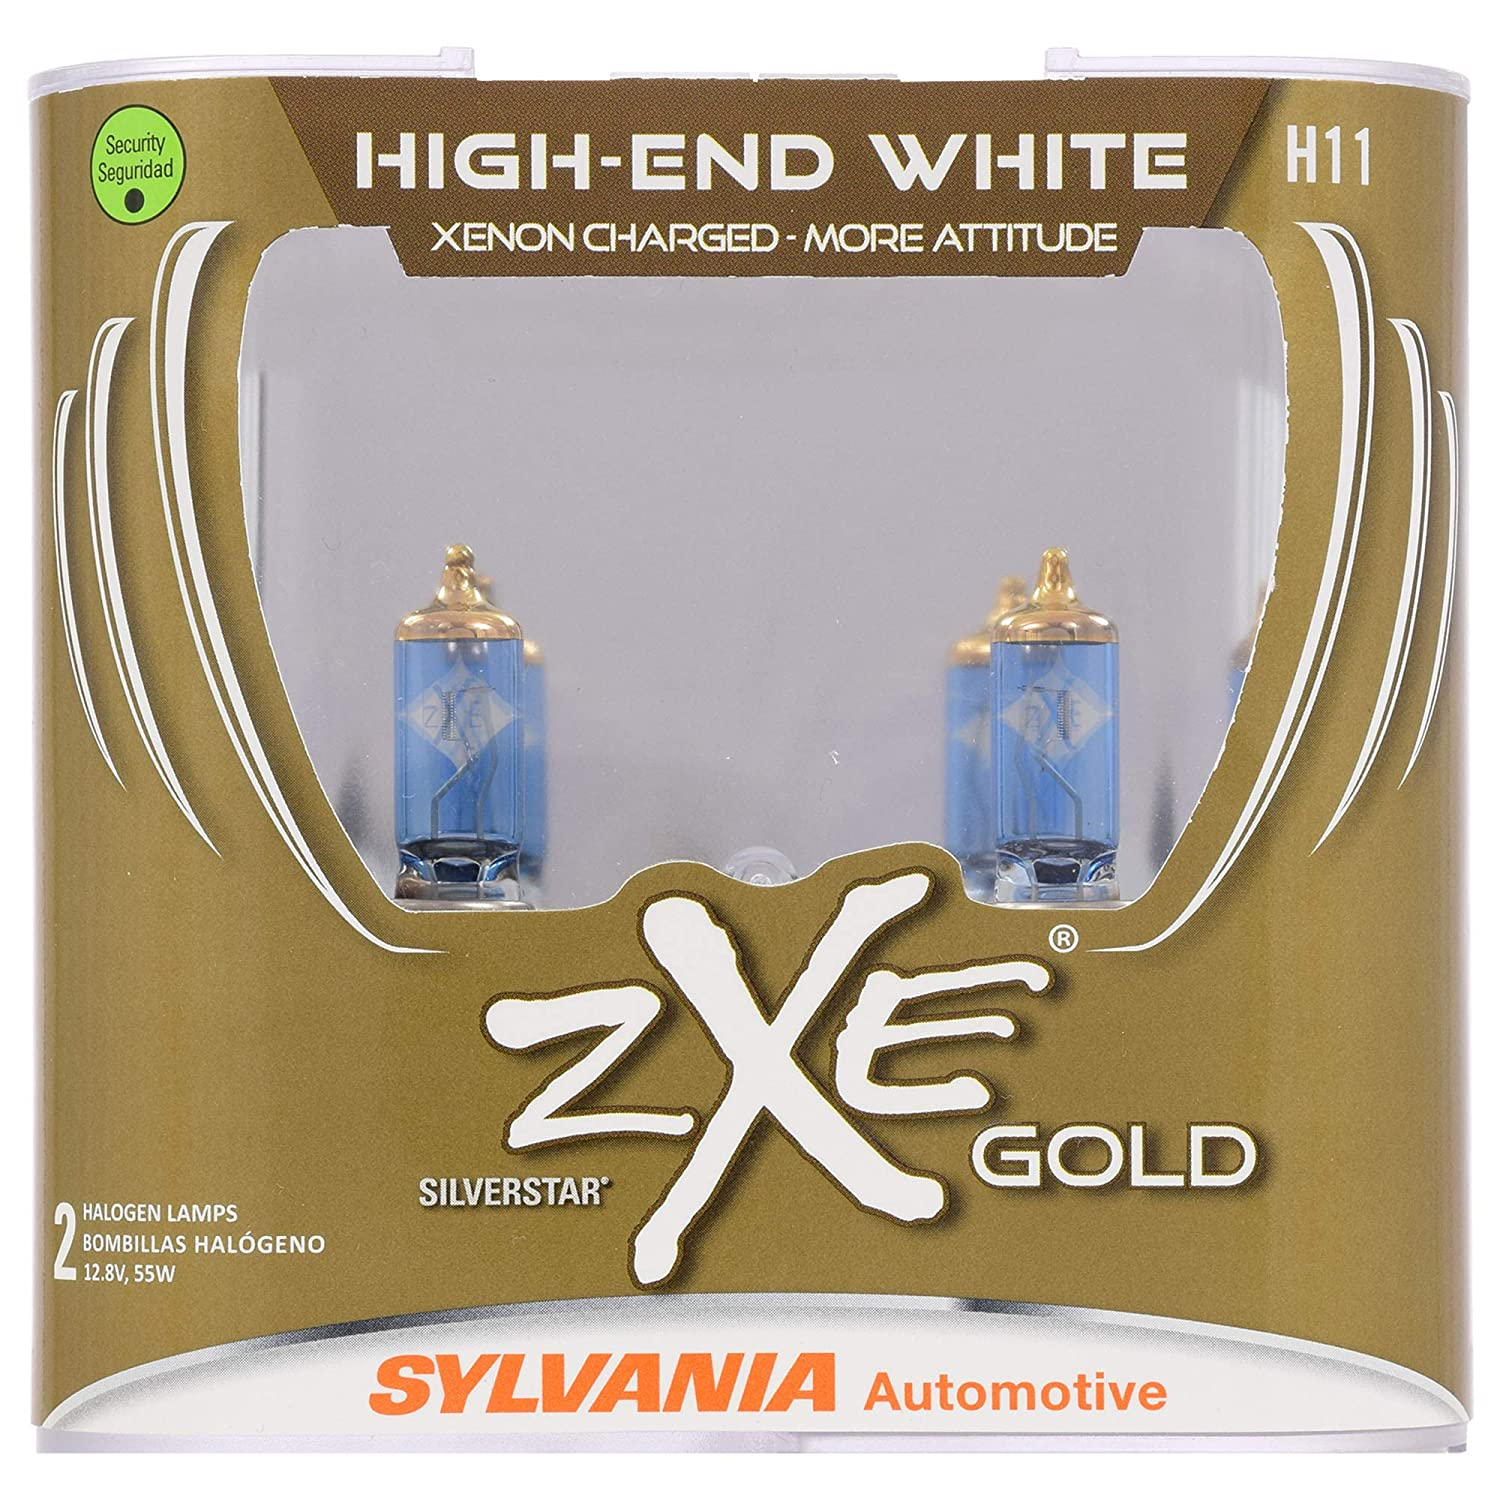 SYLVANIA - H11 (64211) SilverStar zXe GOLD High Performance Halogen Headlight Bulb - Headlight & Fog Light, Bright White Light Output, Best HID Alternative, ...